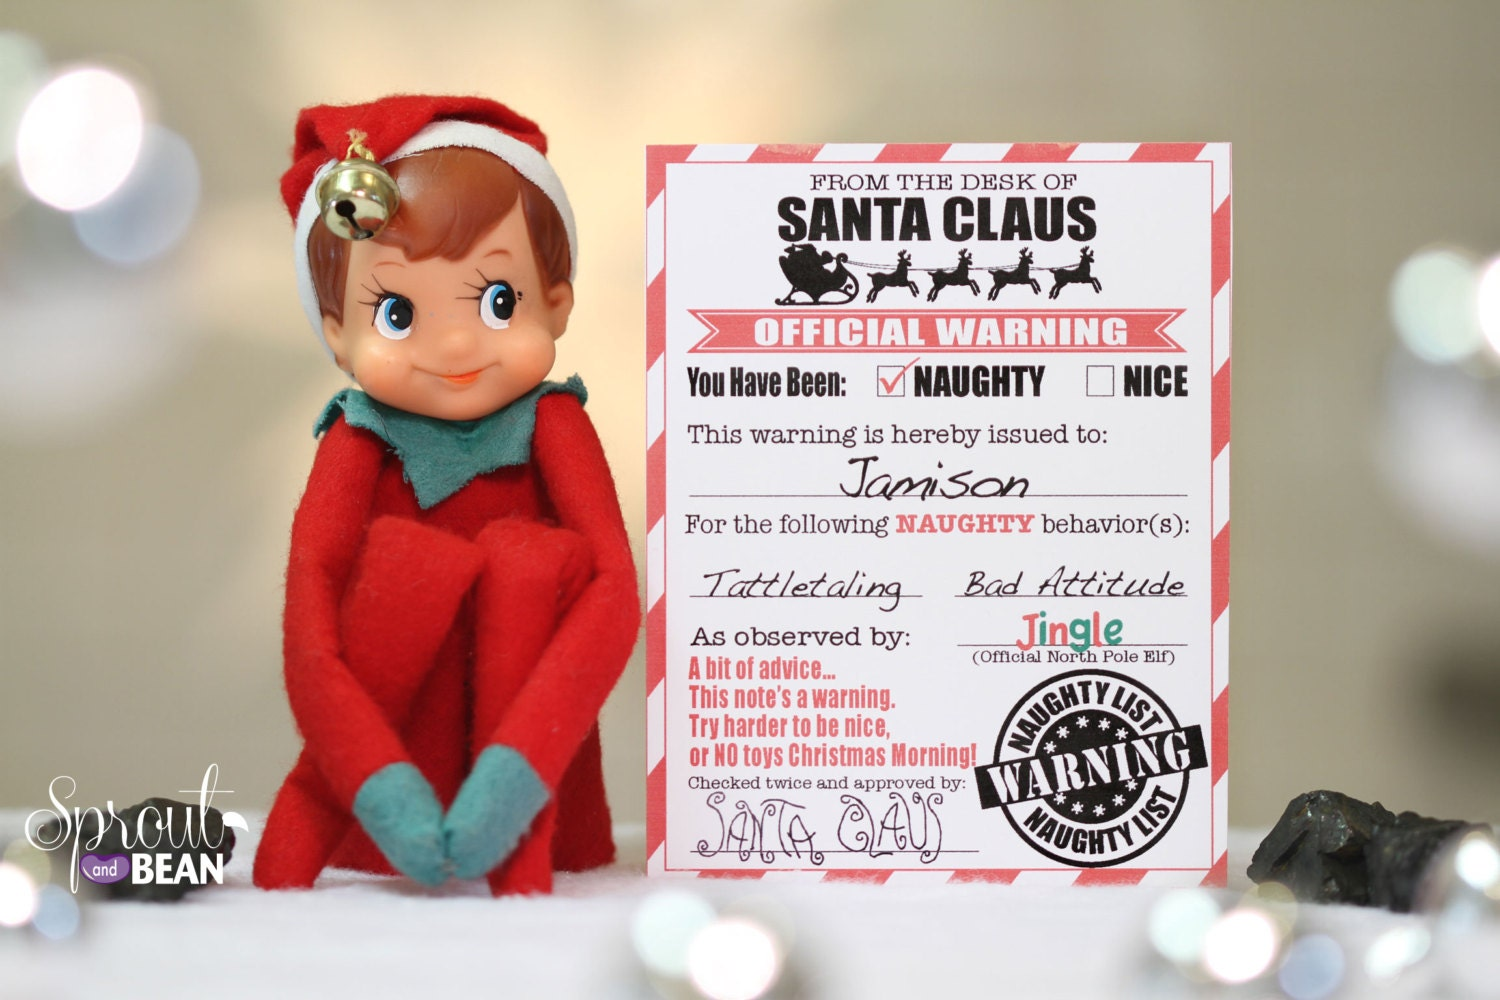 20 awesome letter from santa about being naughty images complete naughty nice warning and reward christmas elf letter spiritdancerdesigns Image collections